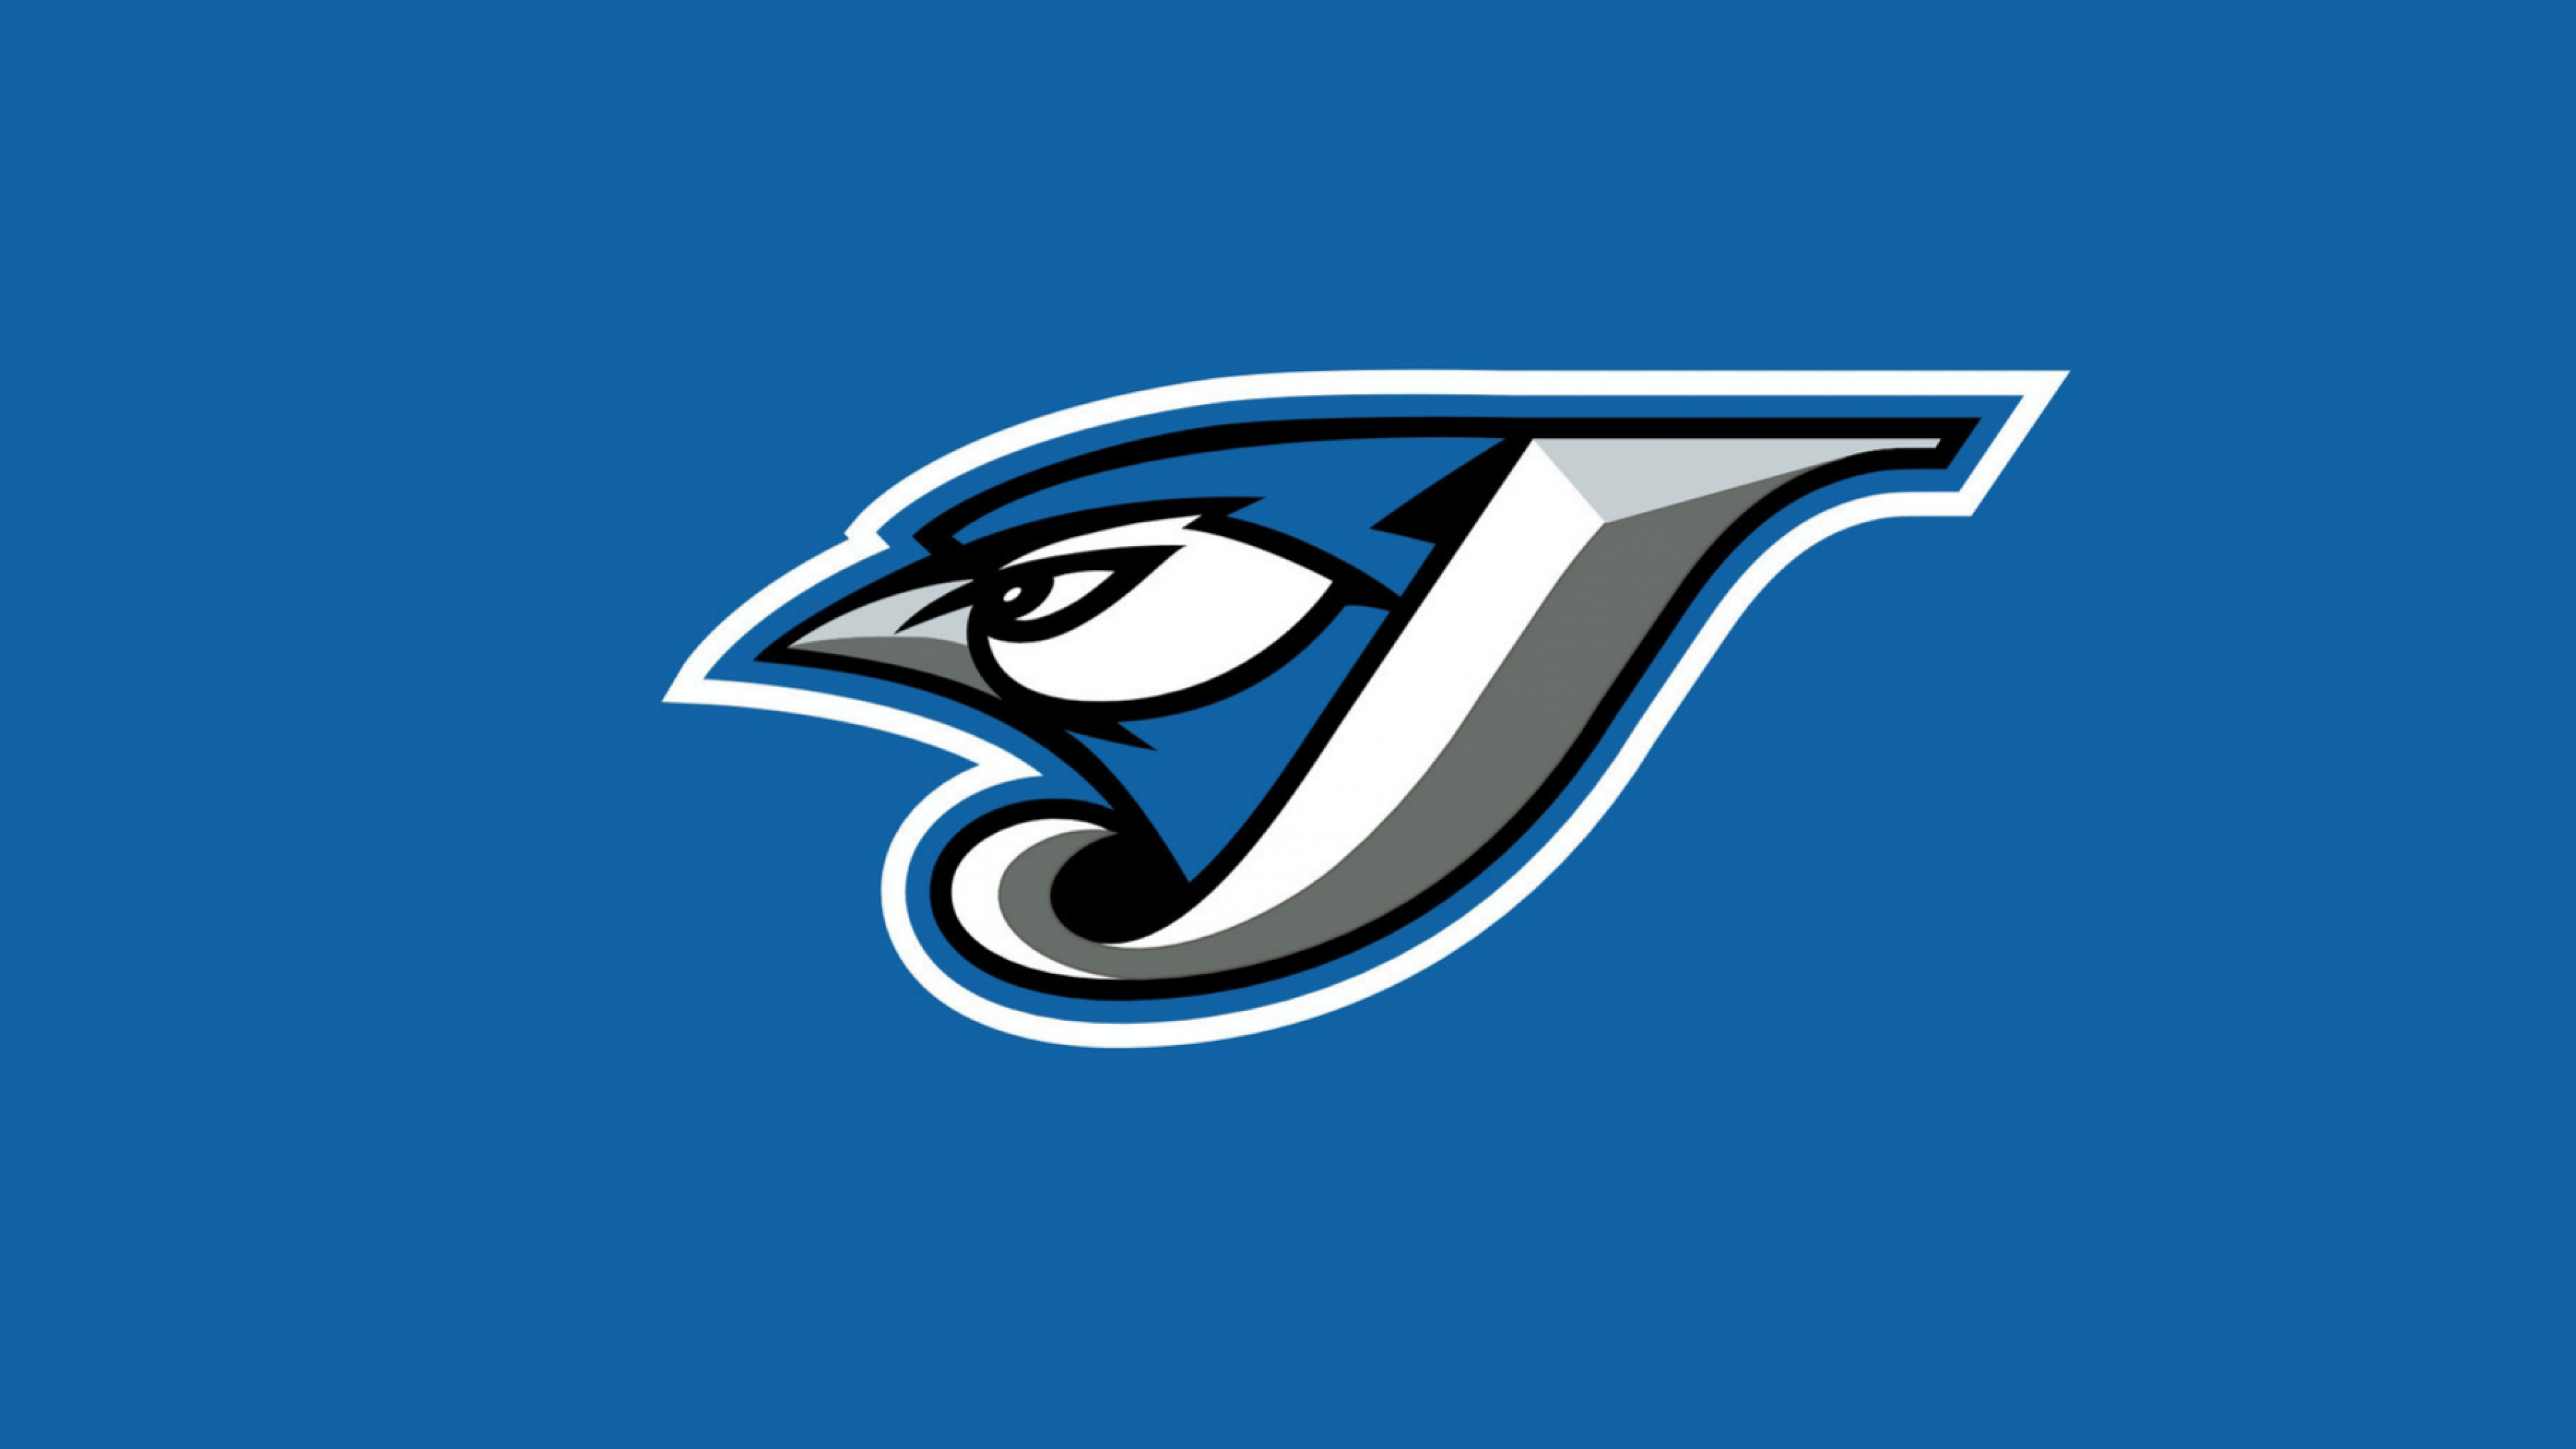 toronto blue jays 1538786683 - Toronto Blue Jays - toronto blue jays wallpapers, sports wallpapers, baseball wallpapers